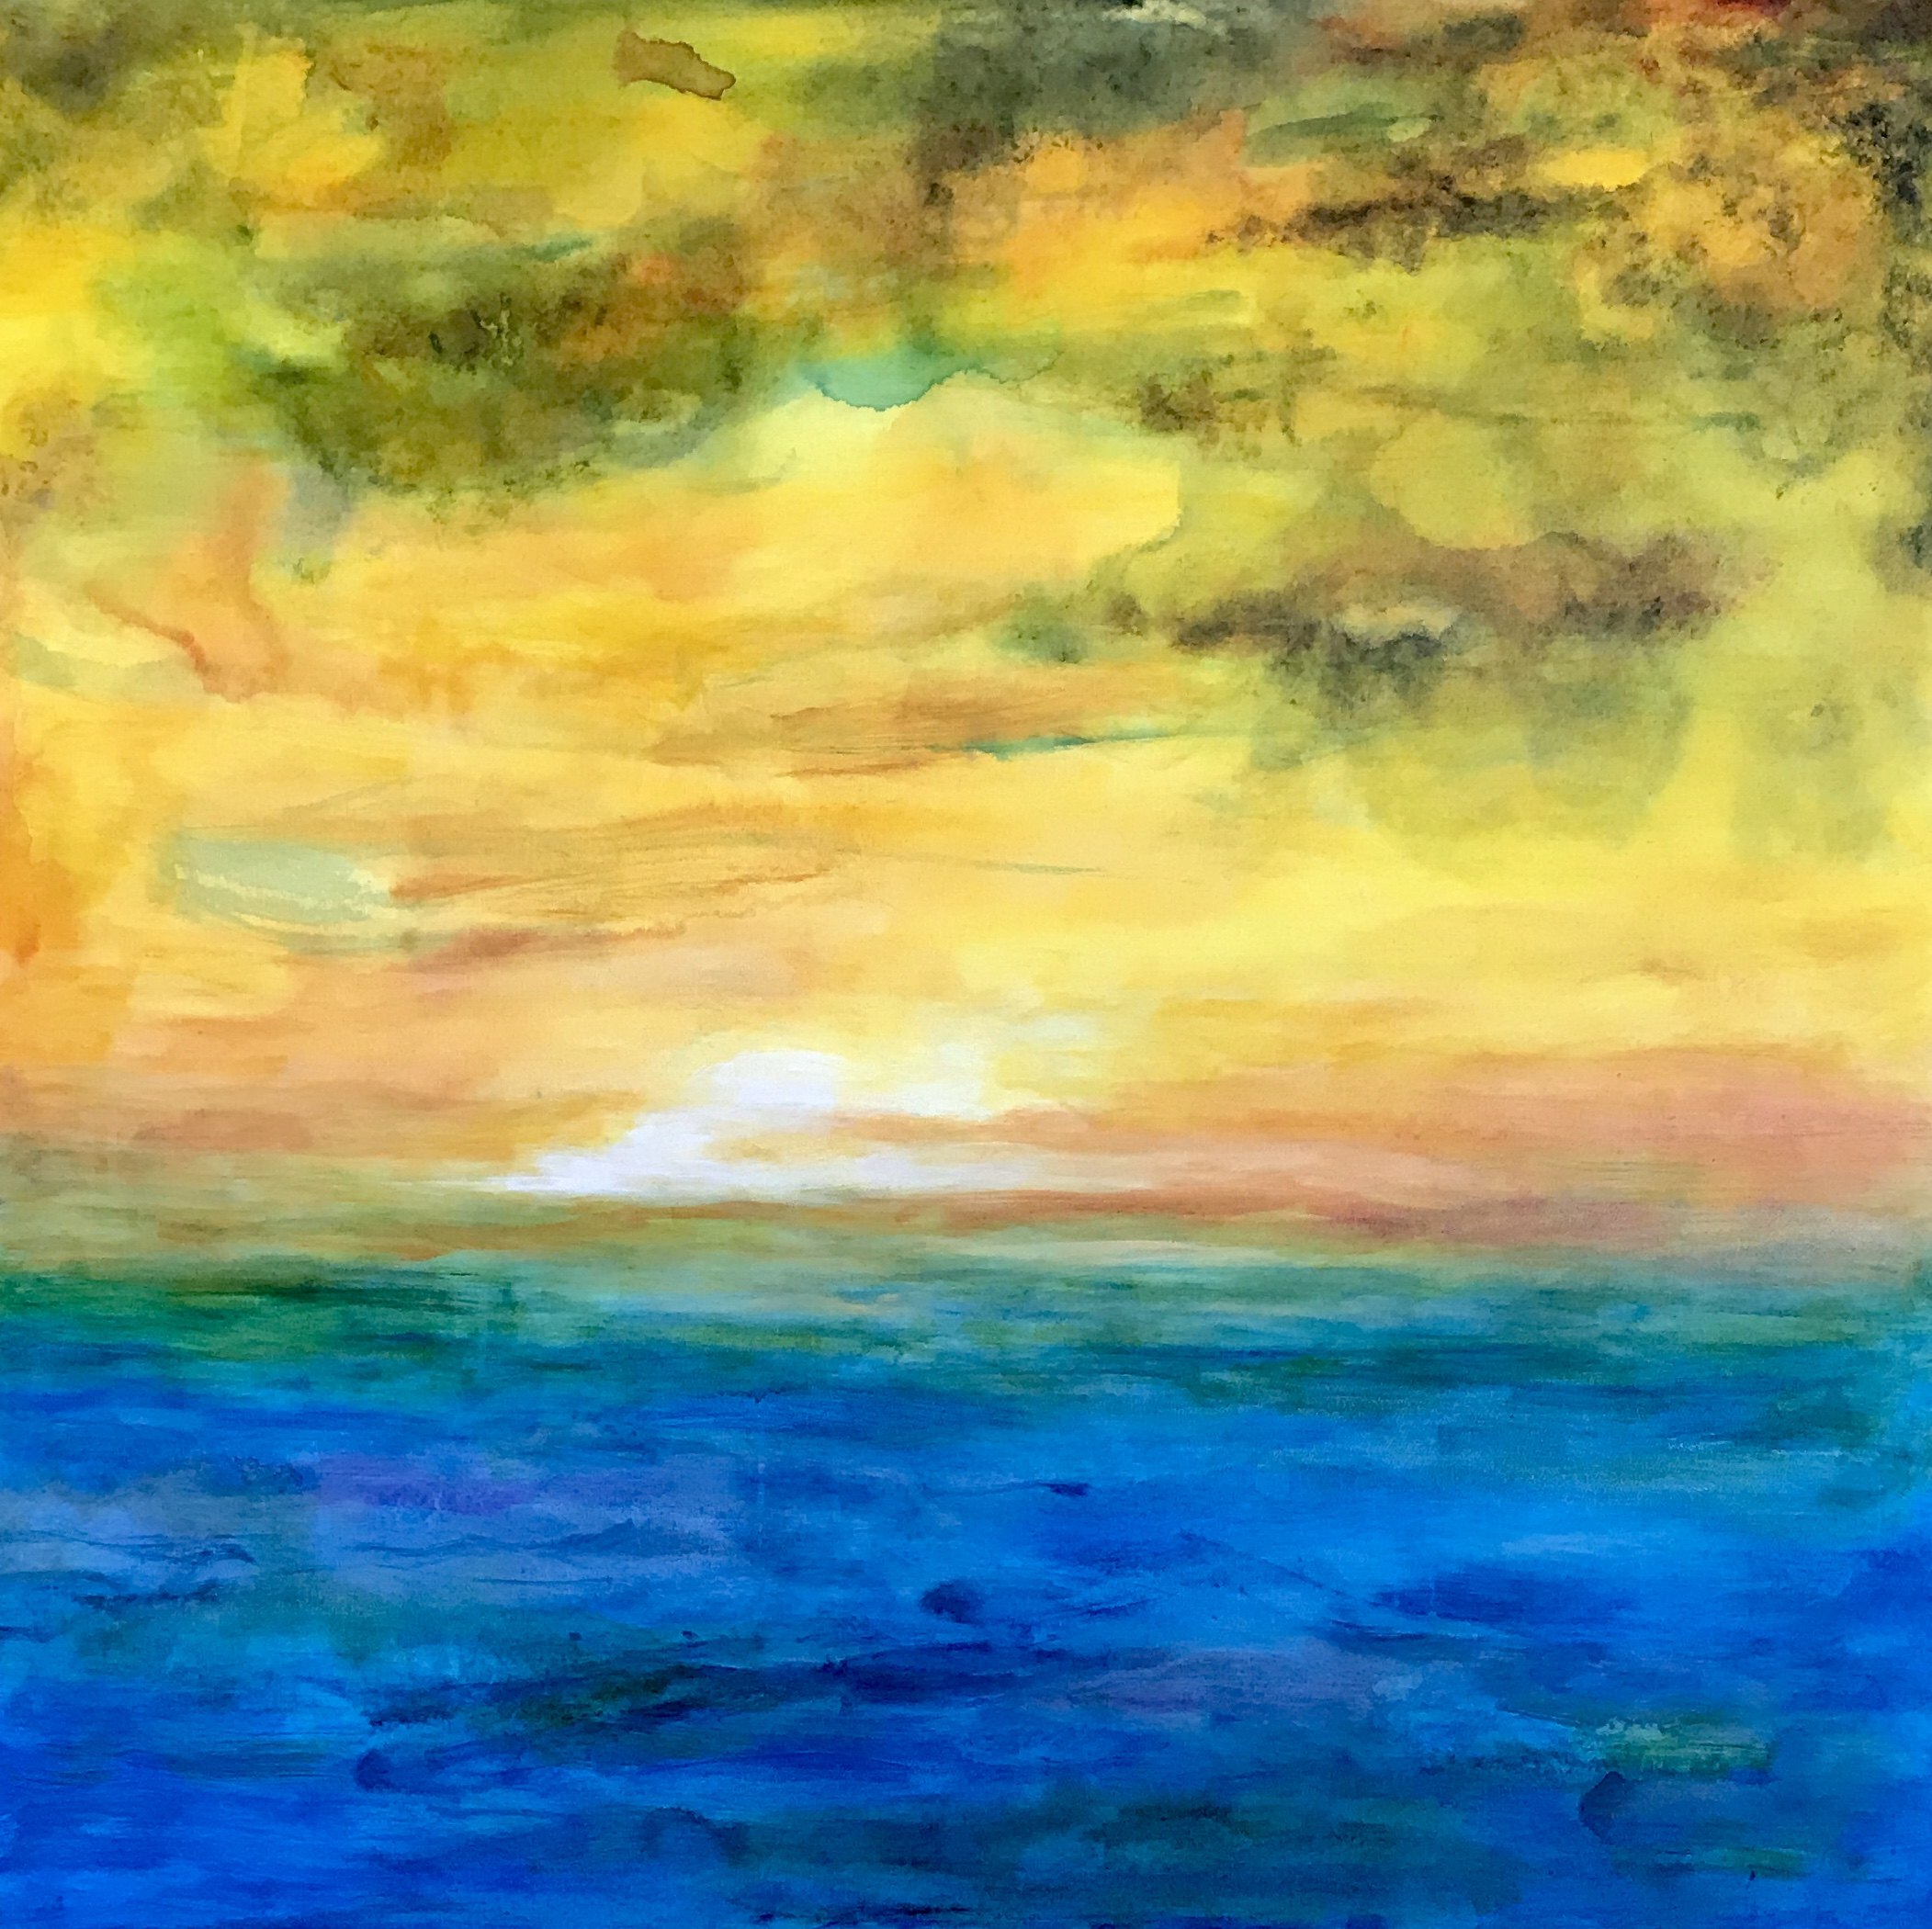 Untitled (Seascape) 2018